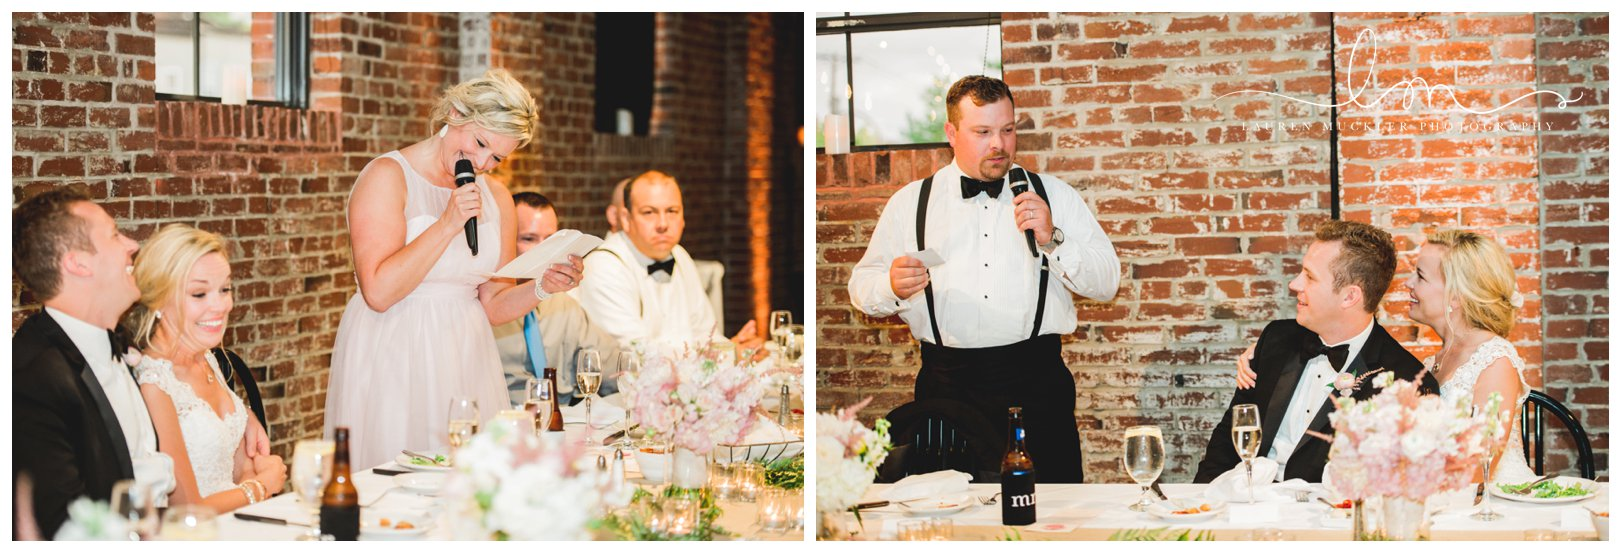 lauren muckler photography_fine art film wedding photography_st louis_photography_0666.jpg